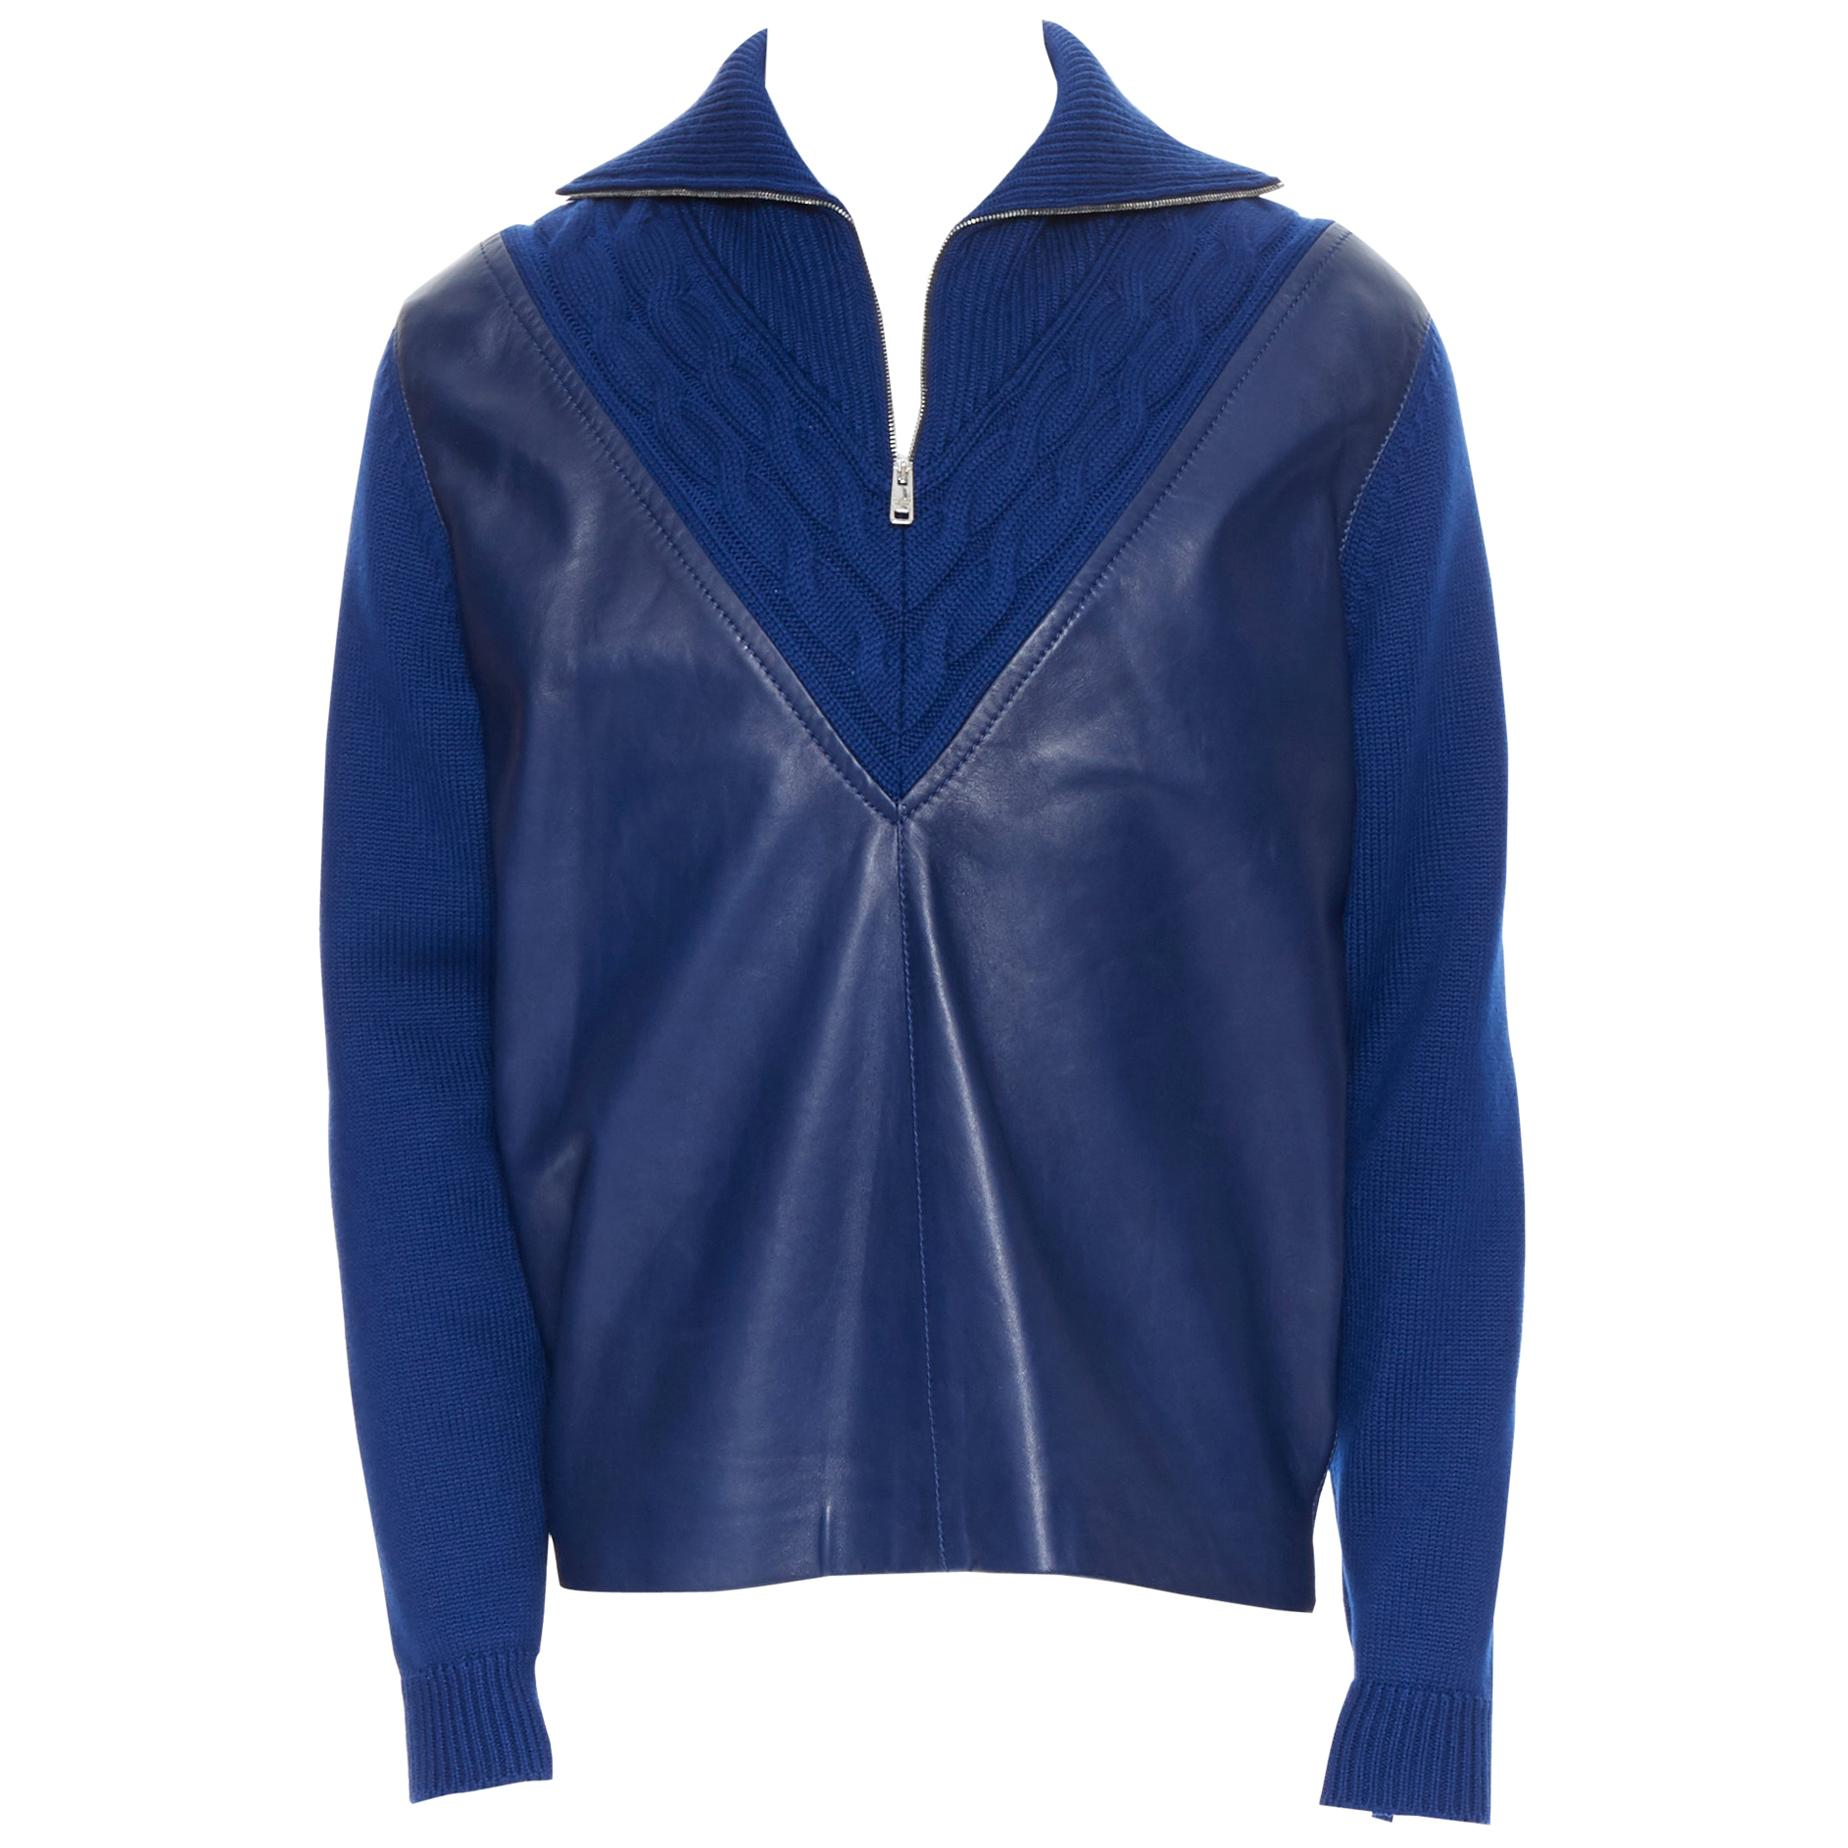 new PRADA 2019 blue leather panel front half zip cable knit varsity sweater IT48